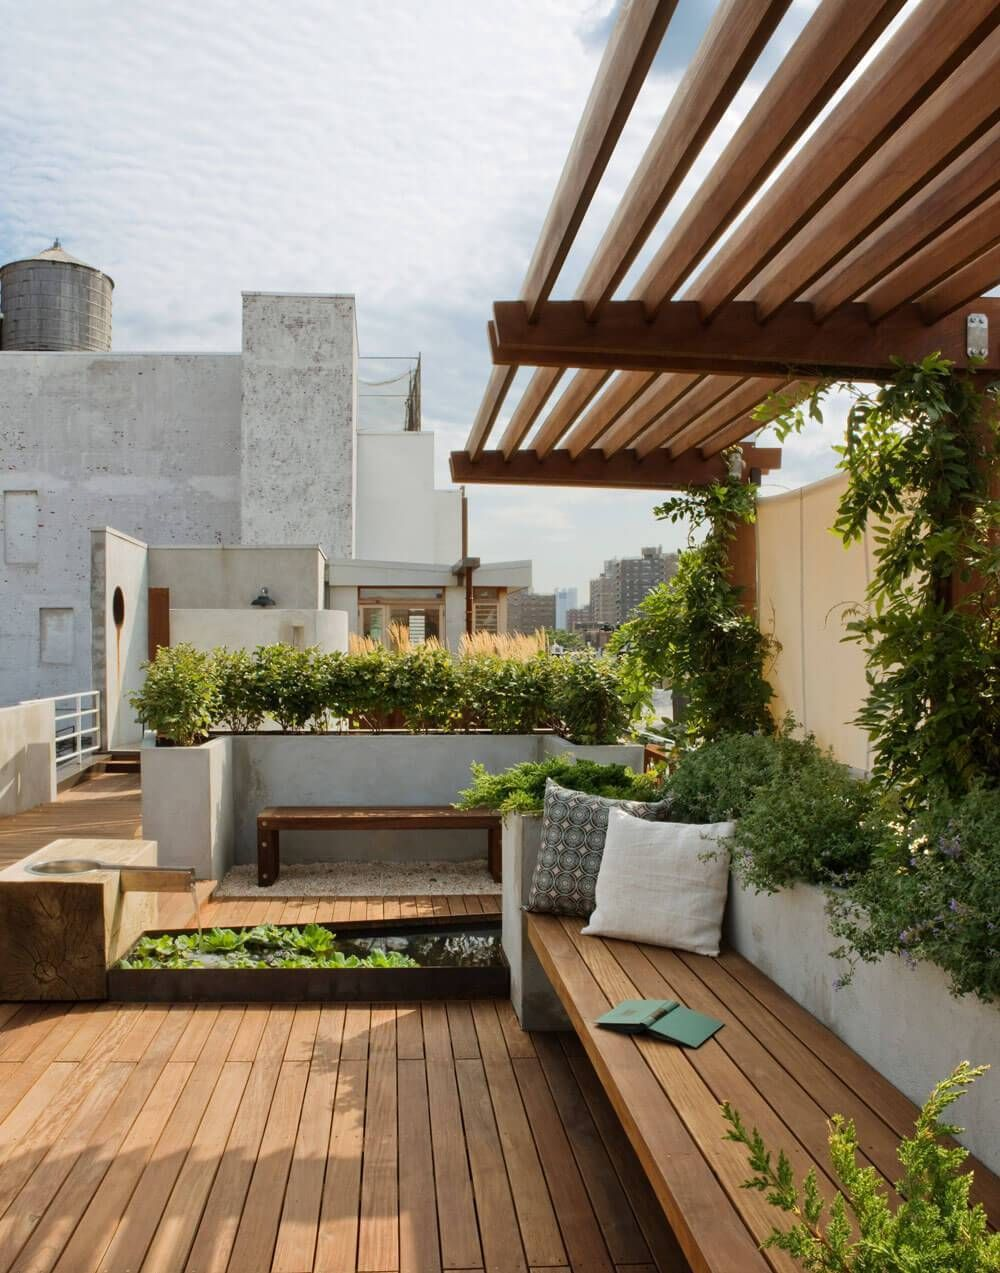 36+ DIY Pergola Ideas With Low Budget For Your Garden